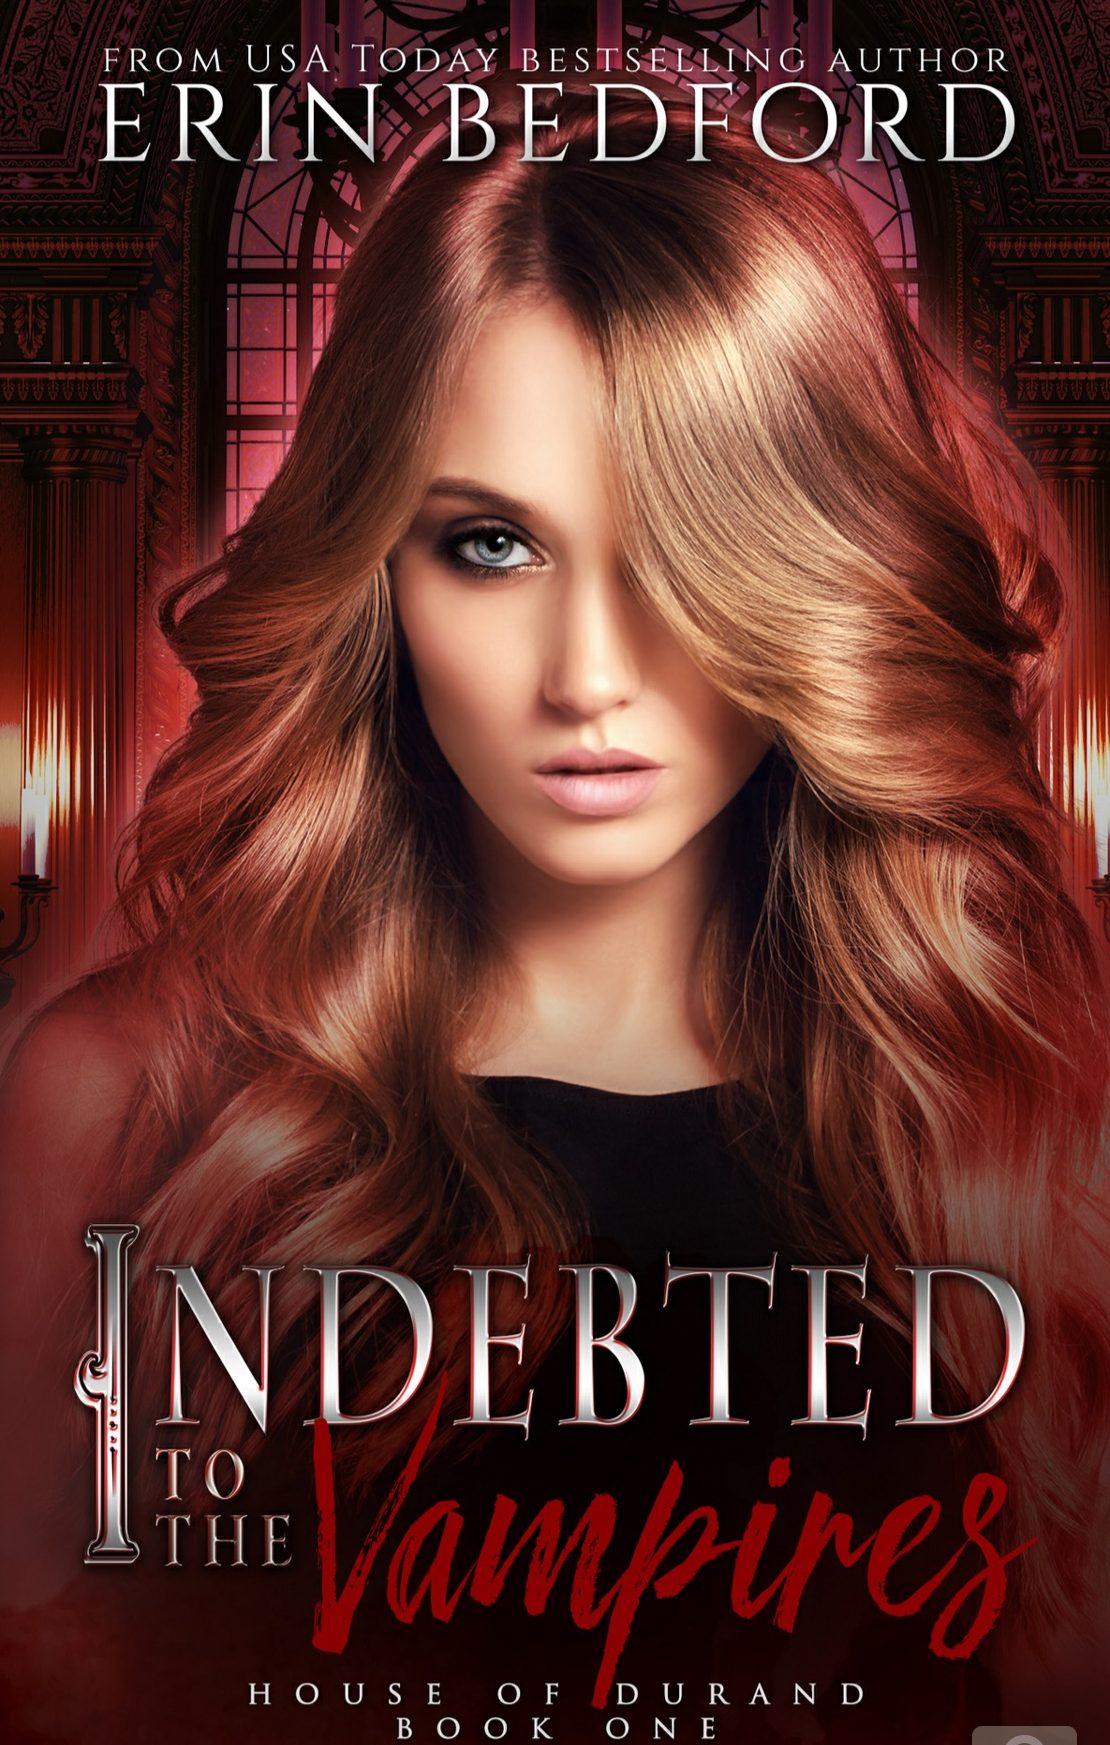 Indebted to Vampires by Erin Bedford – A Book Review